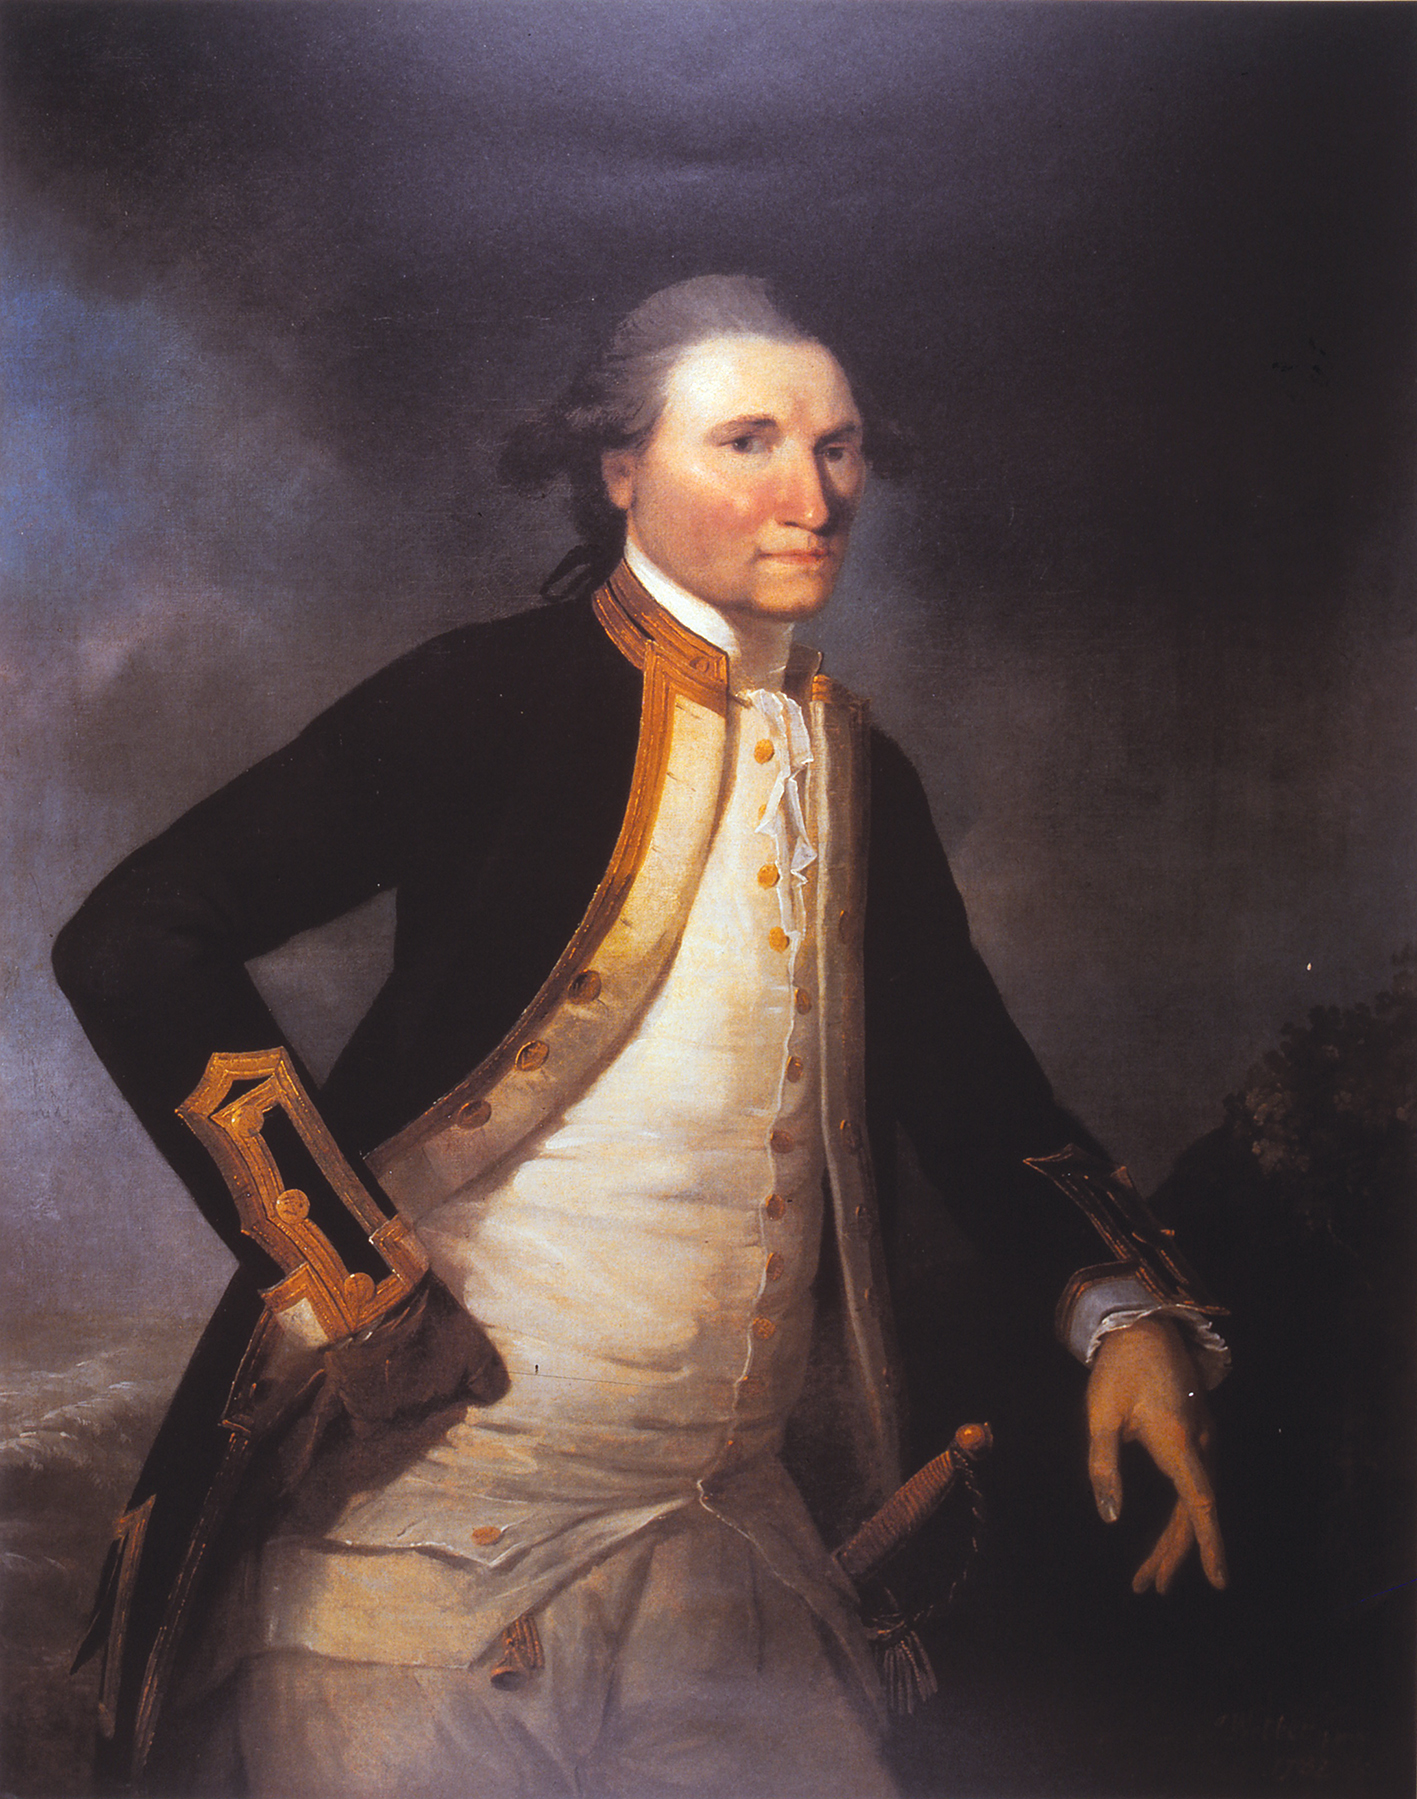 """This striking portrait by Captain Cook's shipmate John Webber captures a vivid image of Cook """"the seaman's seaman"""" as Captain Alan Villiers so accurately described him. The sunburned or """"sea-stained"""" visage and the pale forehead suggests he was a sea officer who kept his hat on. The glove on his right hand conceals a vivid red scar, the battle wound received in Canada when a powder horn exploded in his palm during an attack by French forces in the River St Laurence."""